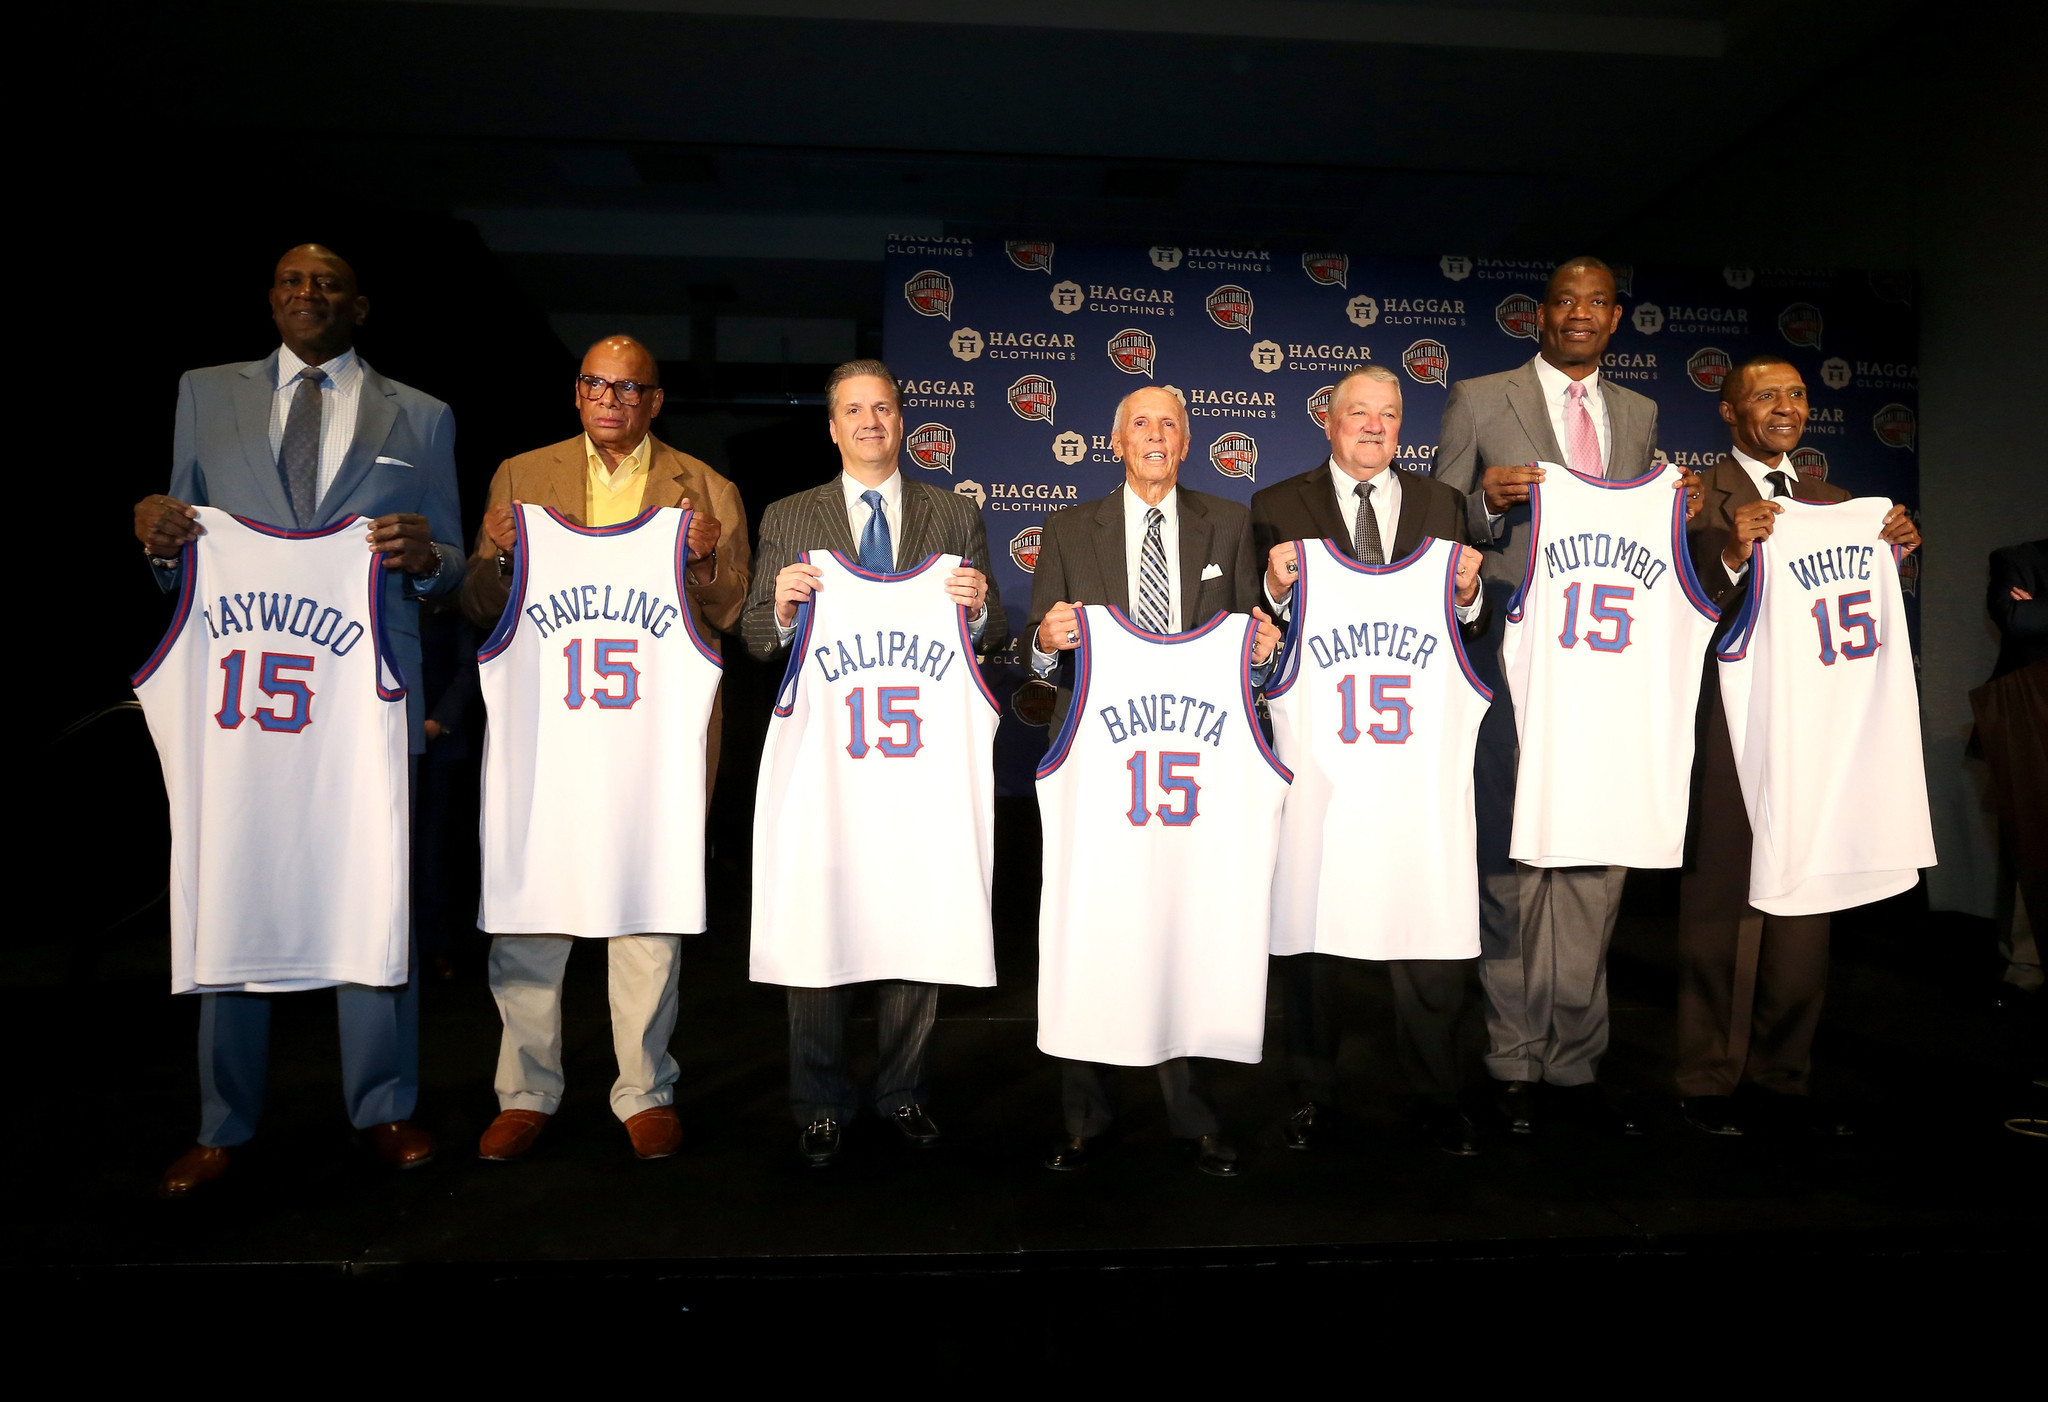 11 new inductees to Naismith Basketball Hall of Fame ...